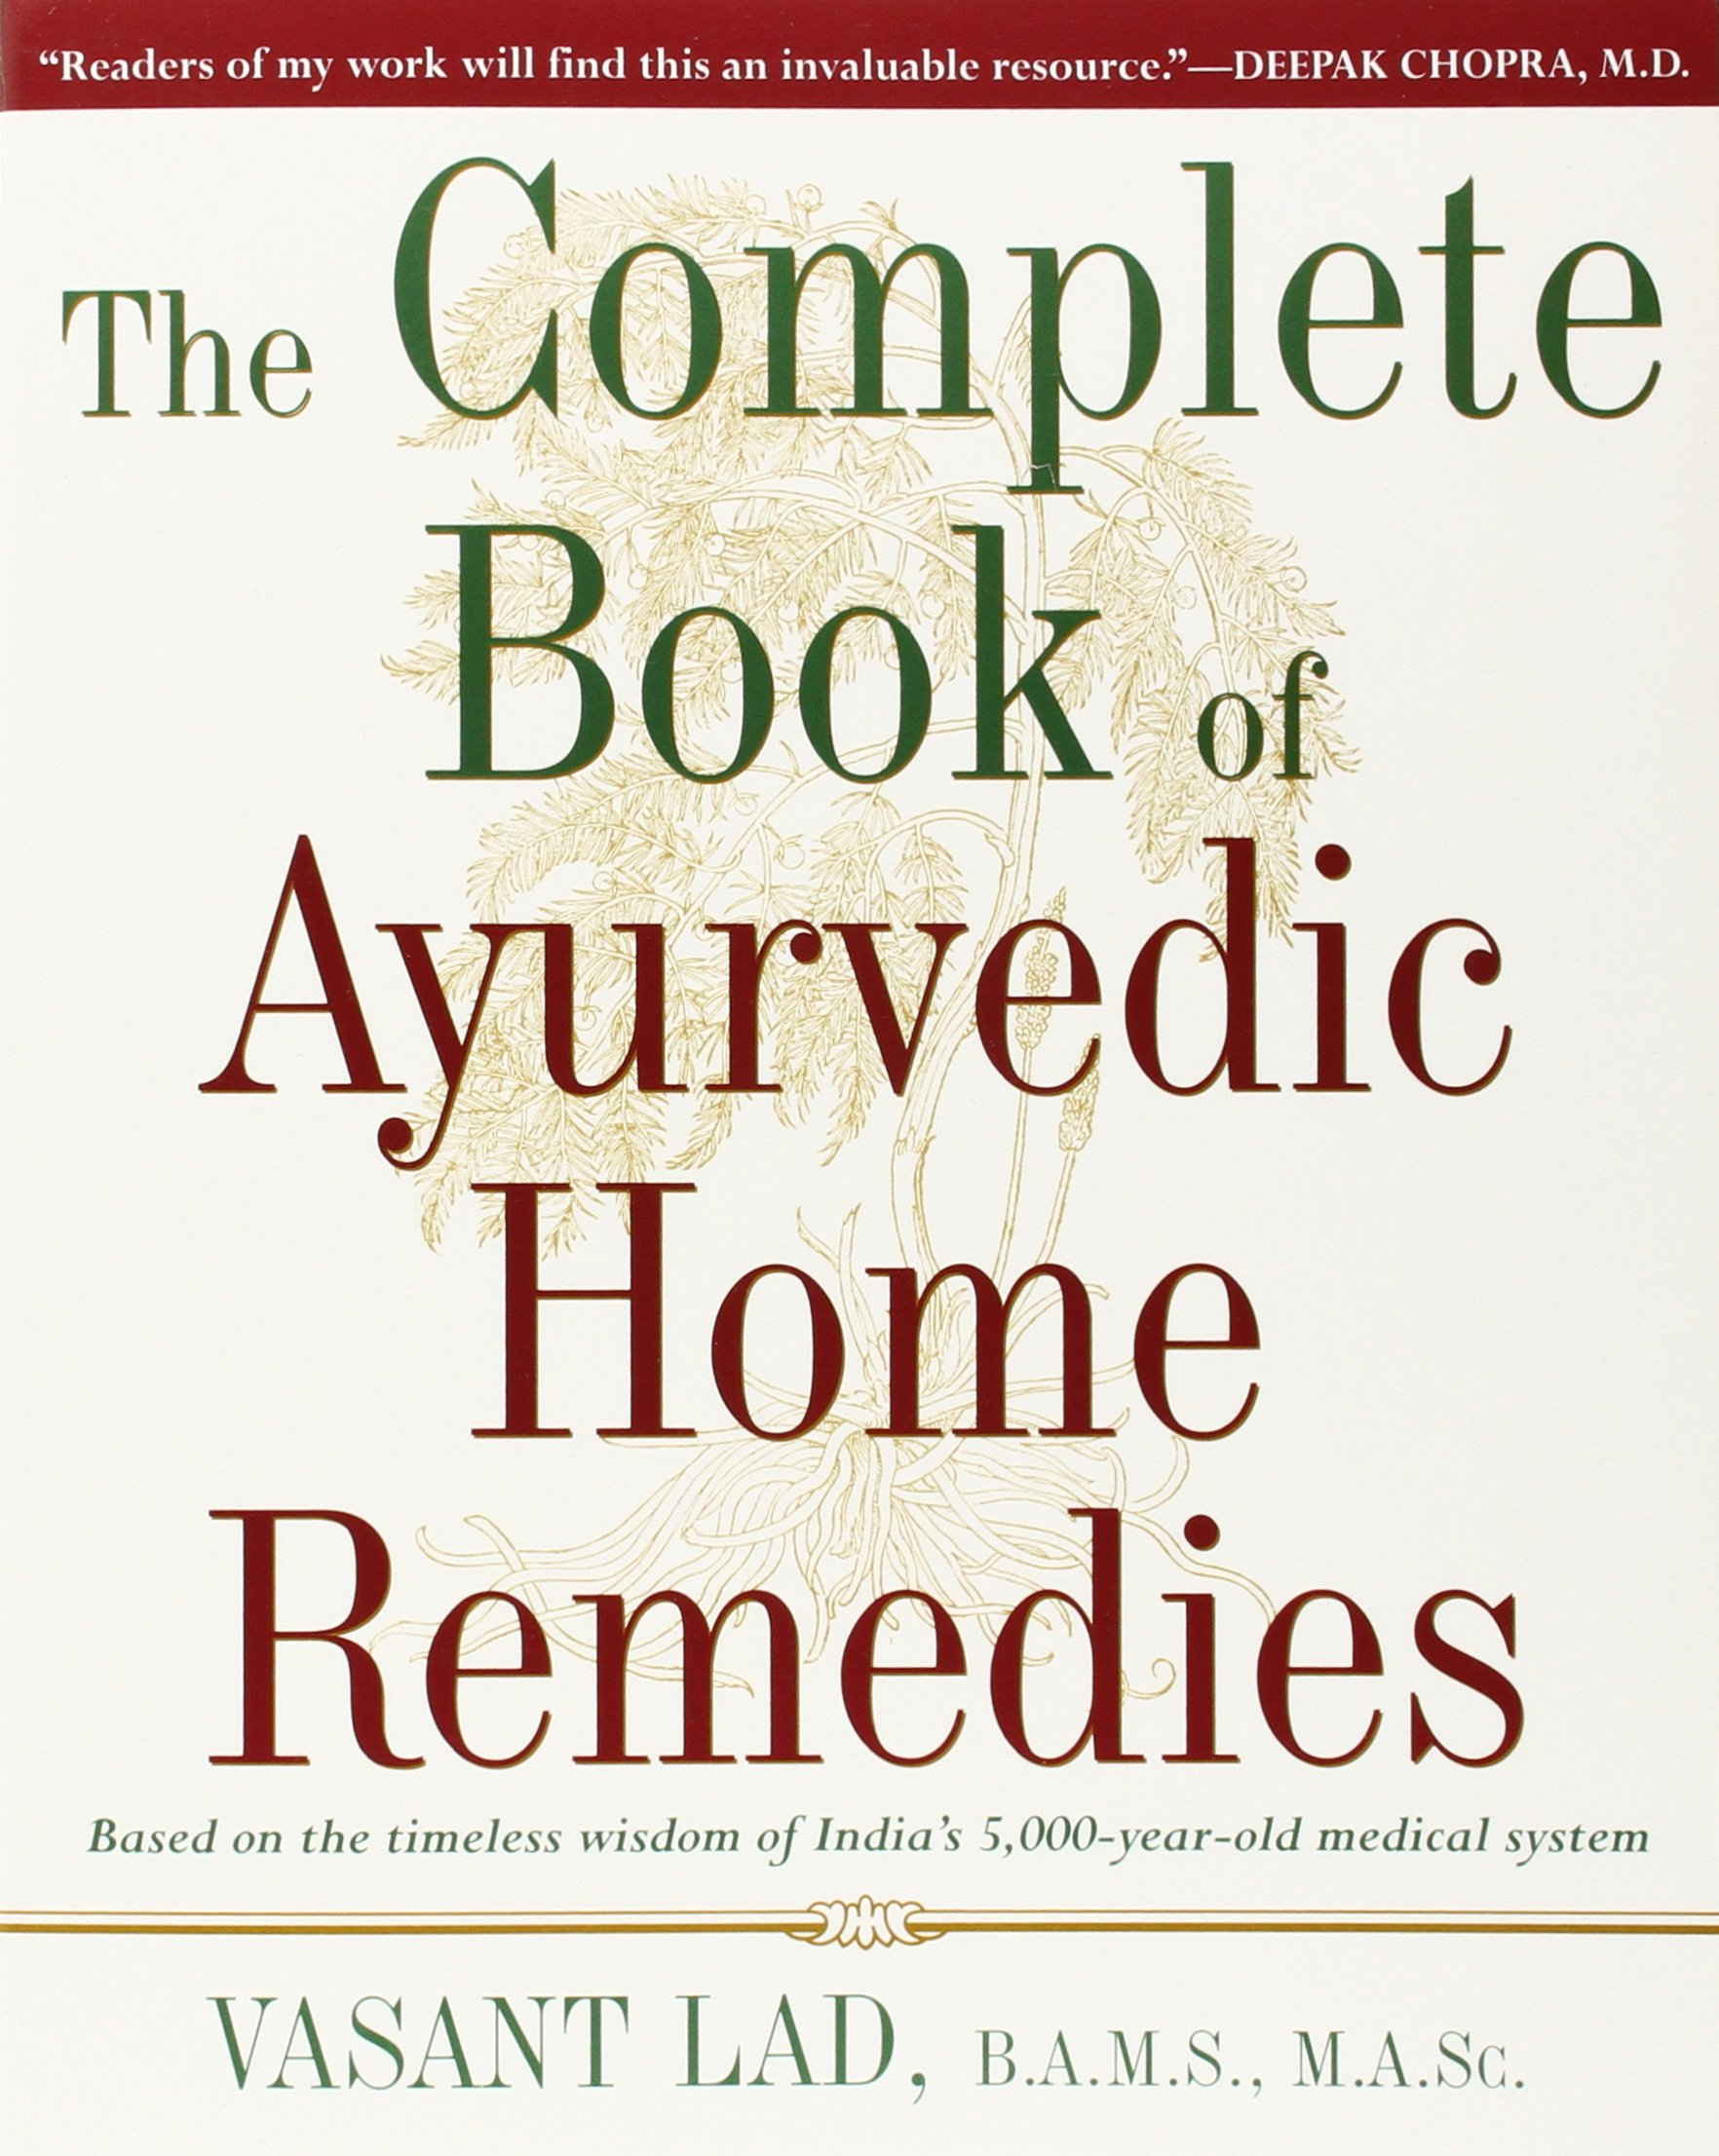 Complete Book of Ayurvedic Home Remedies $14